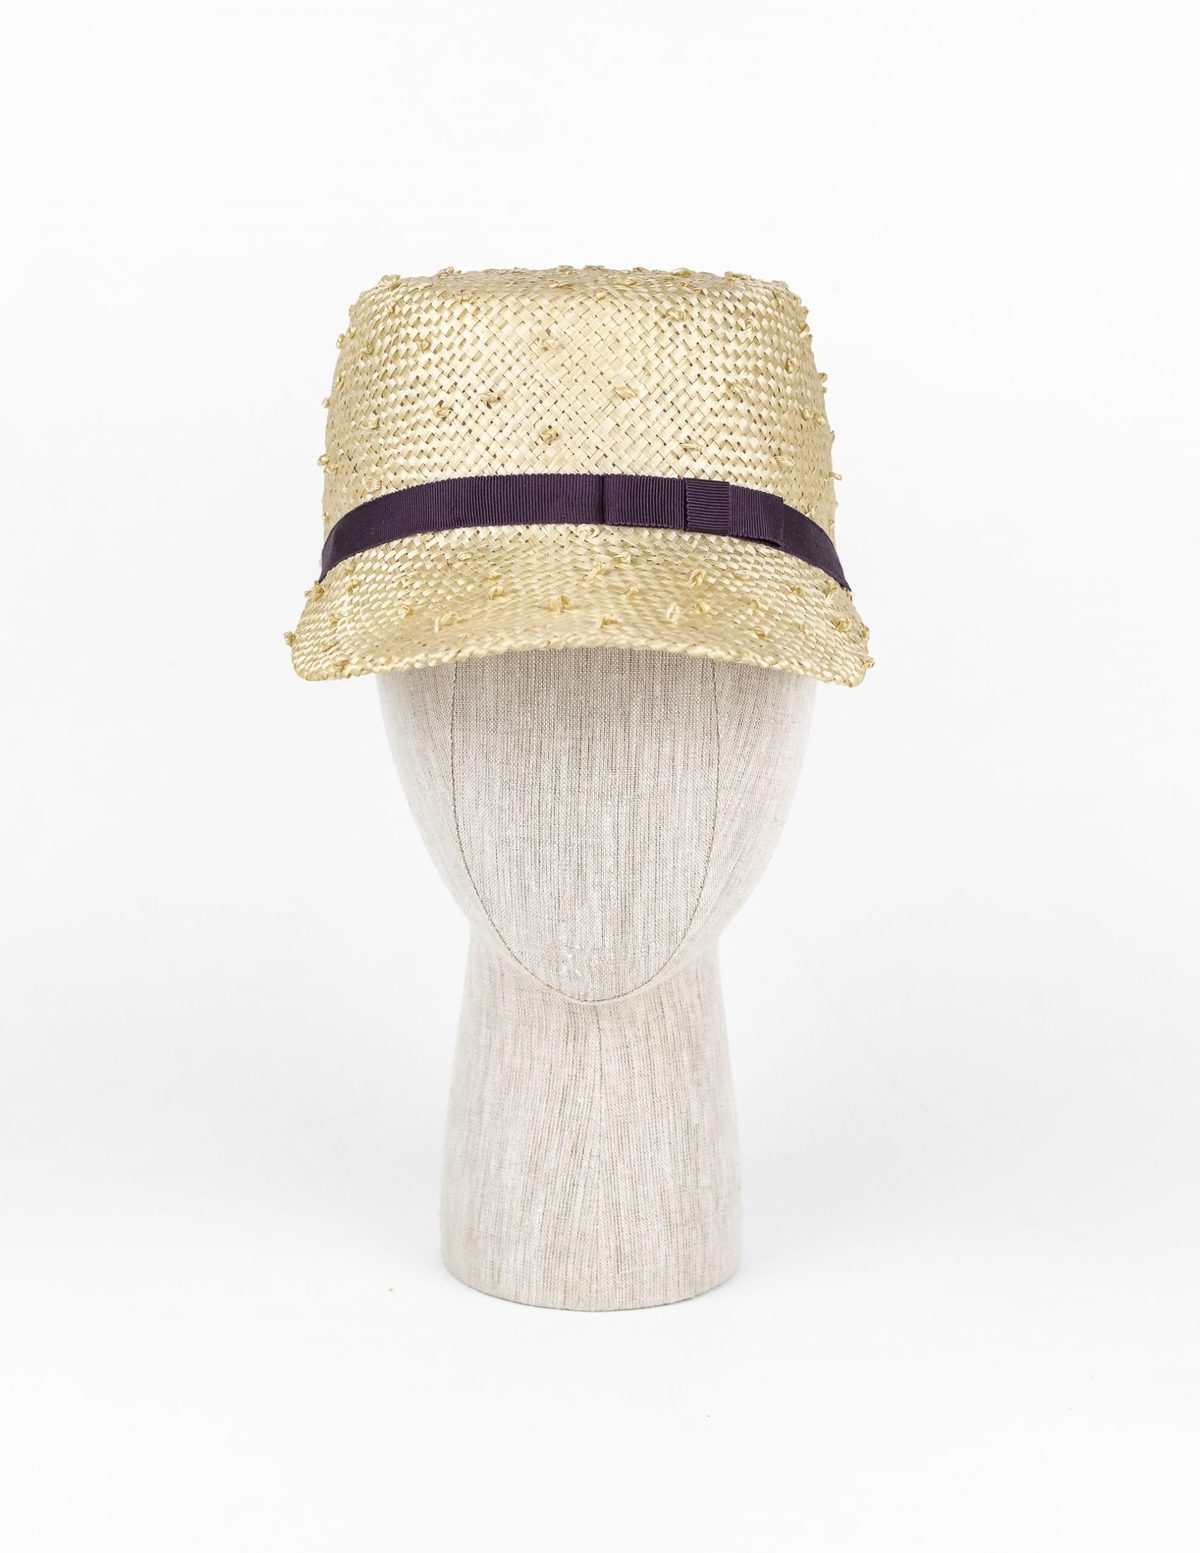 Natural knotted sisal flat top cap with grape Petersham ribbon $420